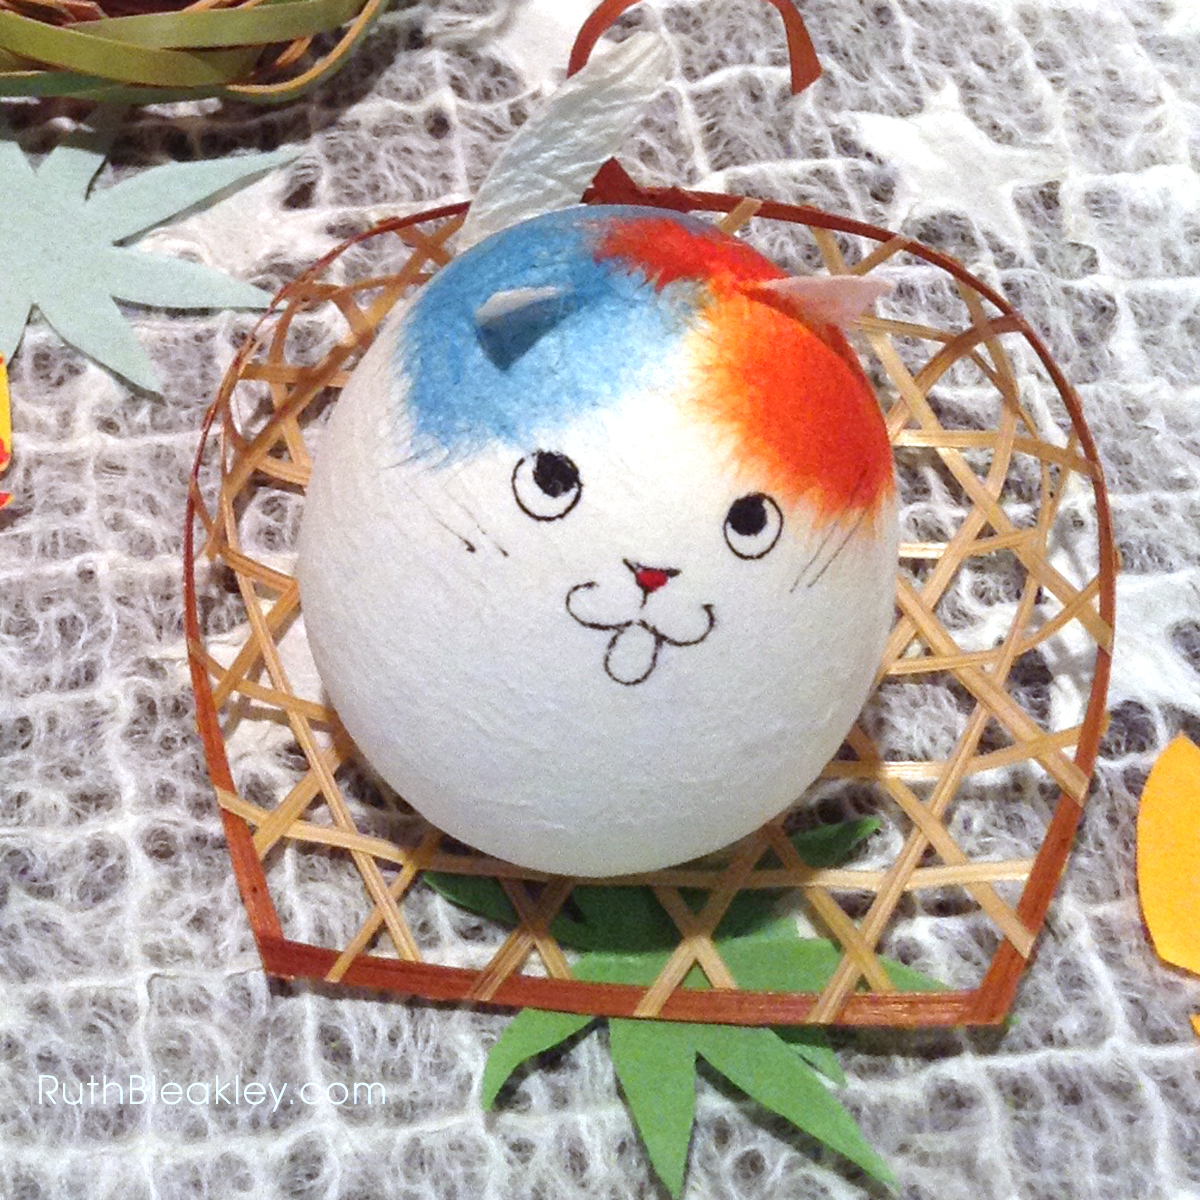 Ruth visits Suzuki Shofudo in Kyoto Japan for Katazome Washi Paper - cat egg doll